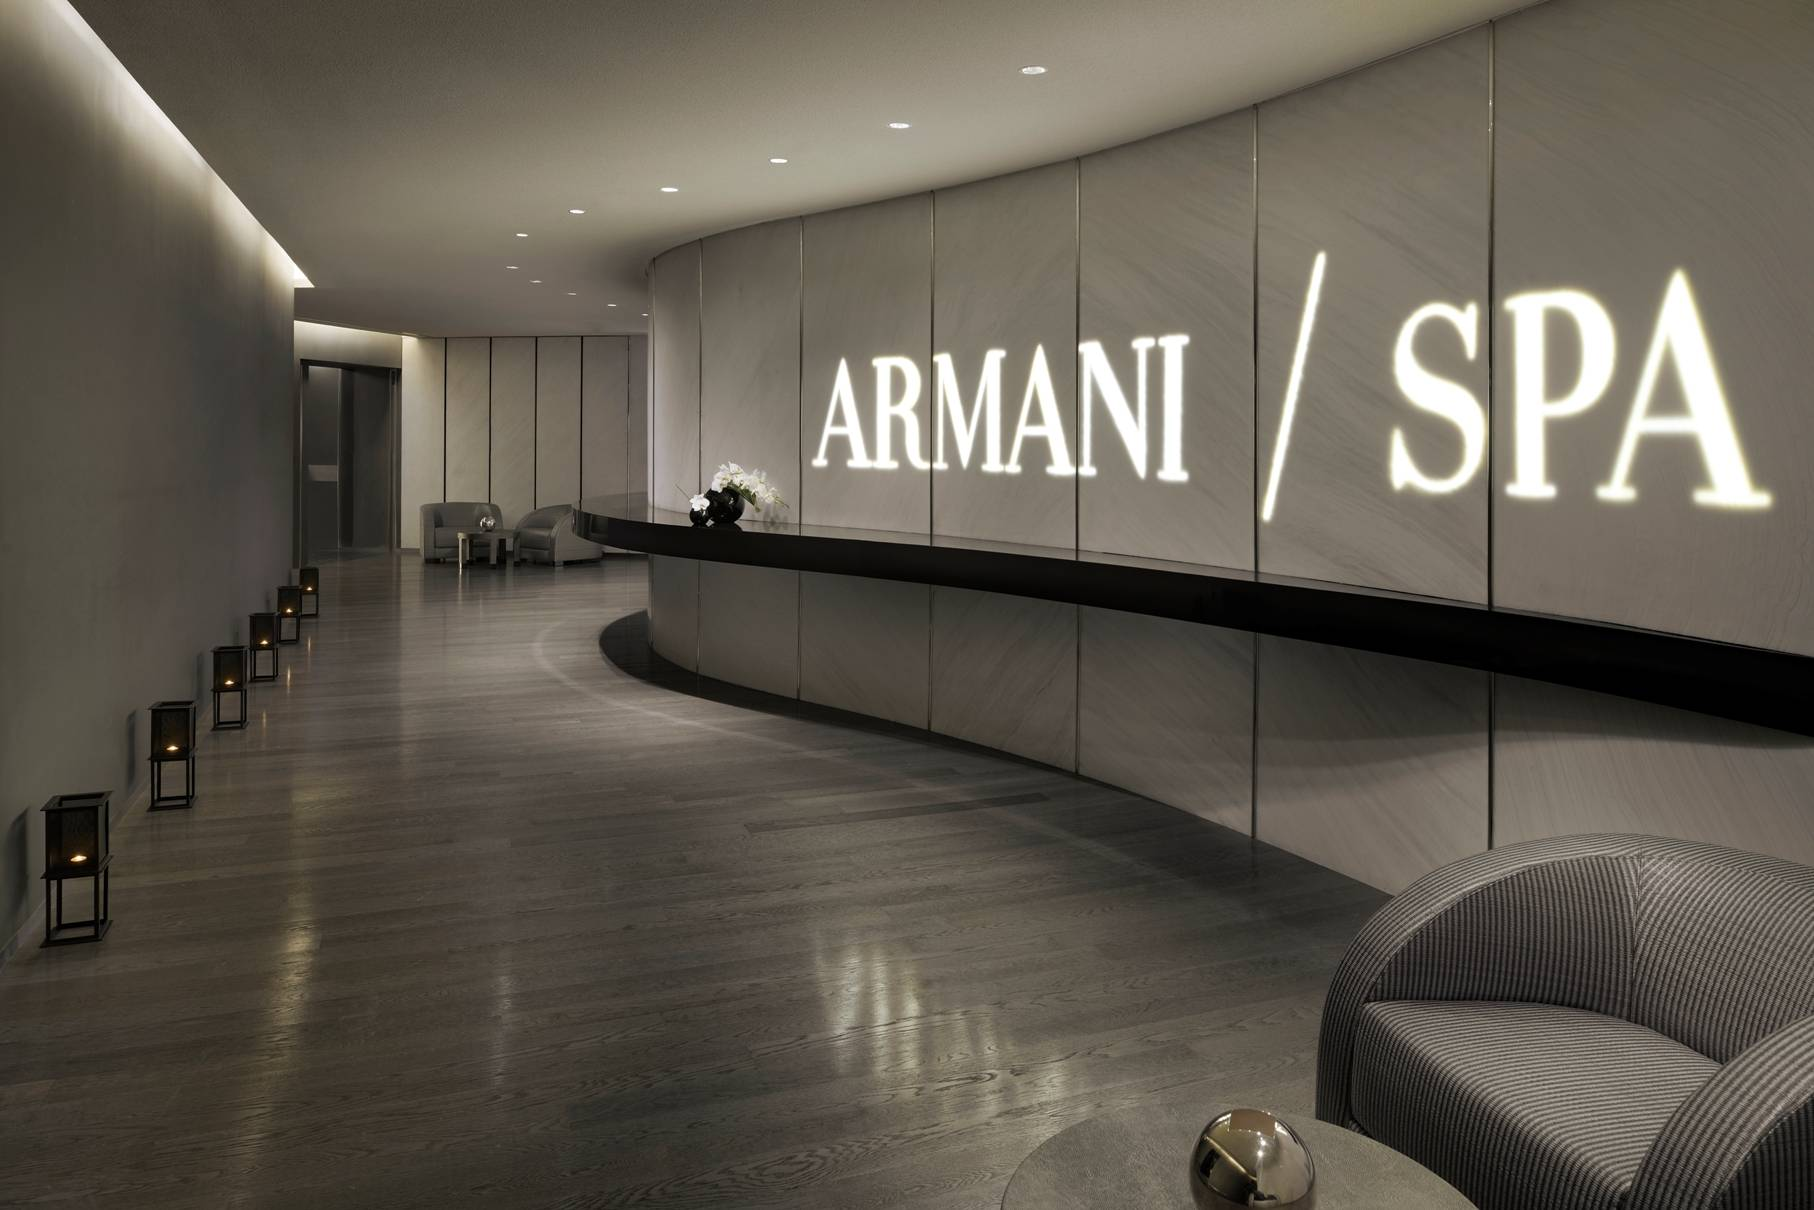 Armani Spa Entrance Dubai